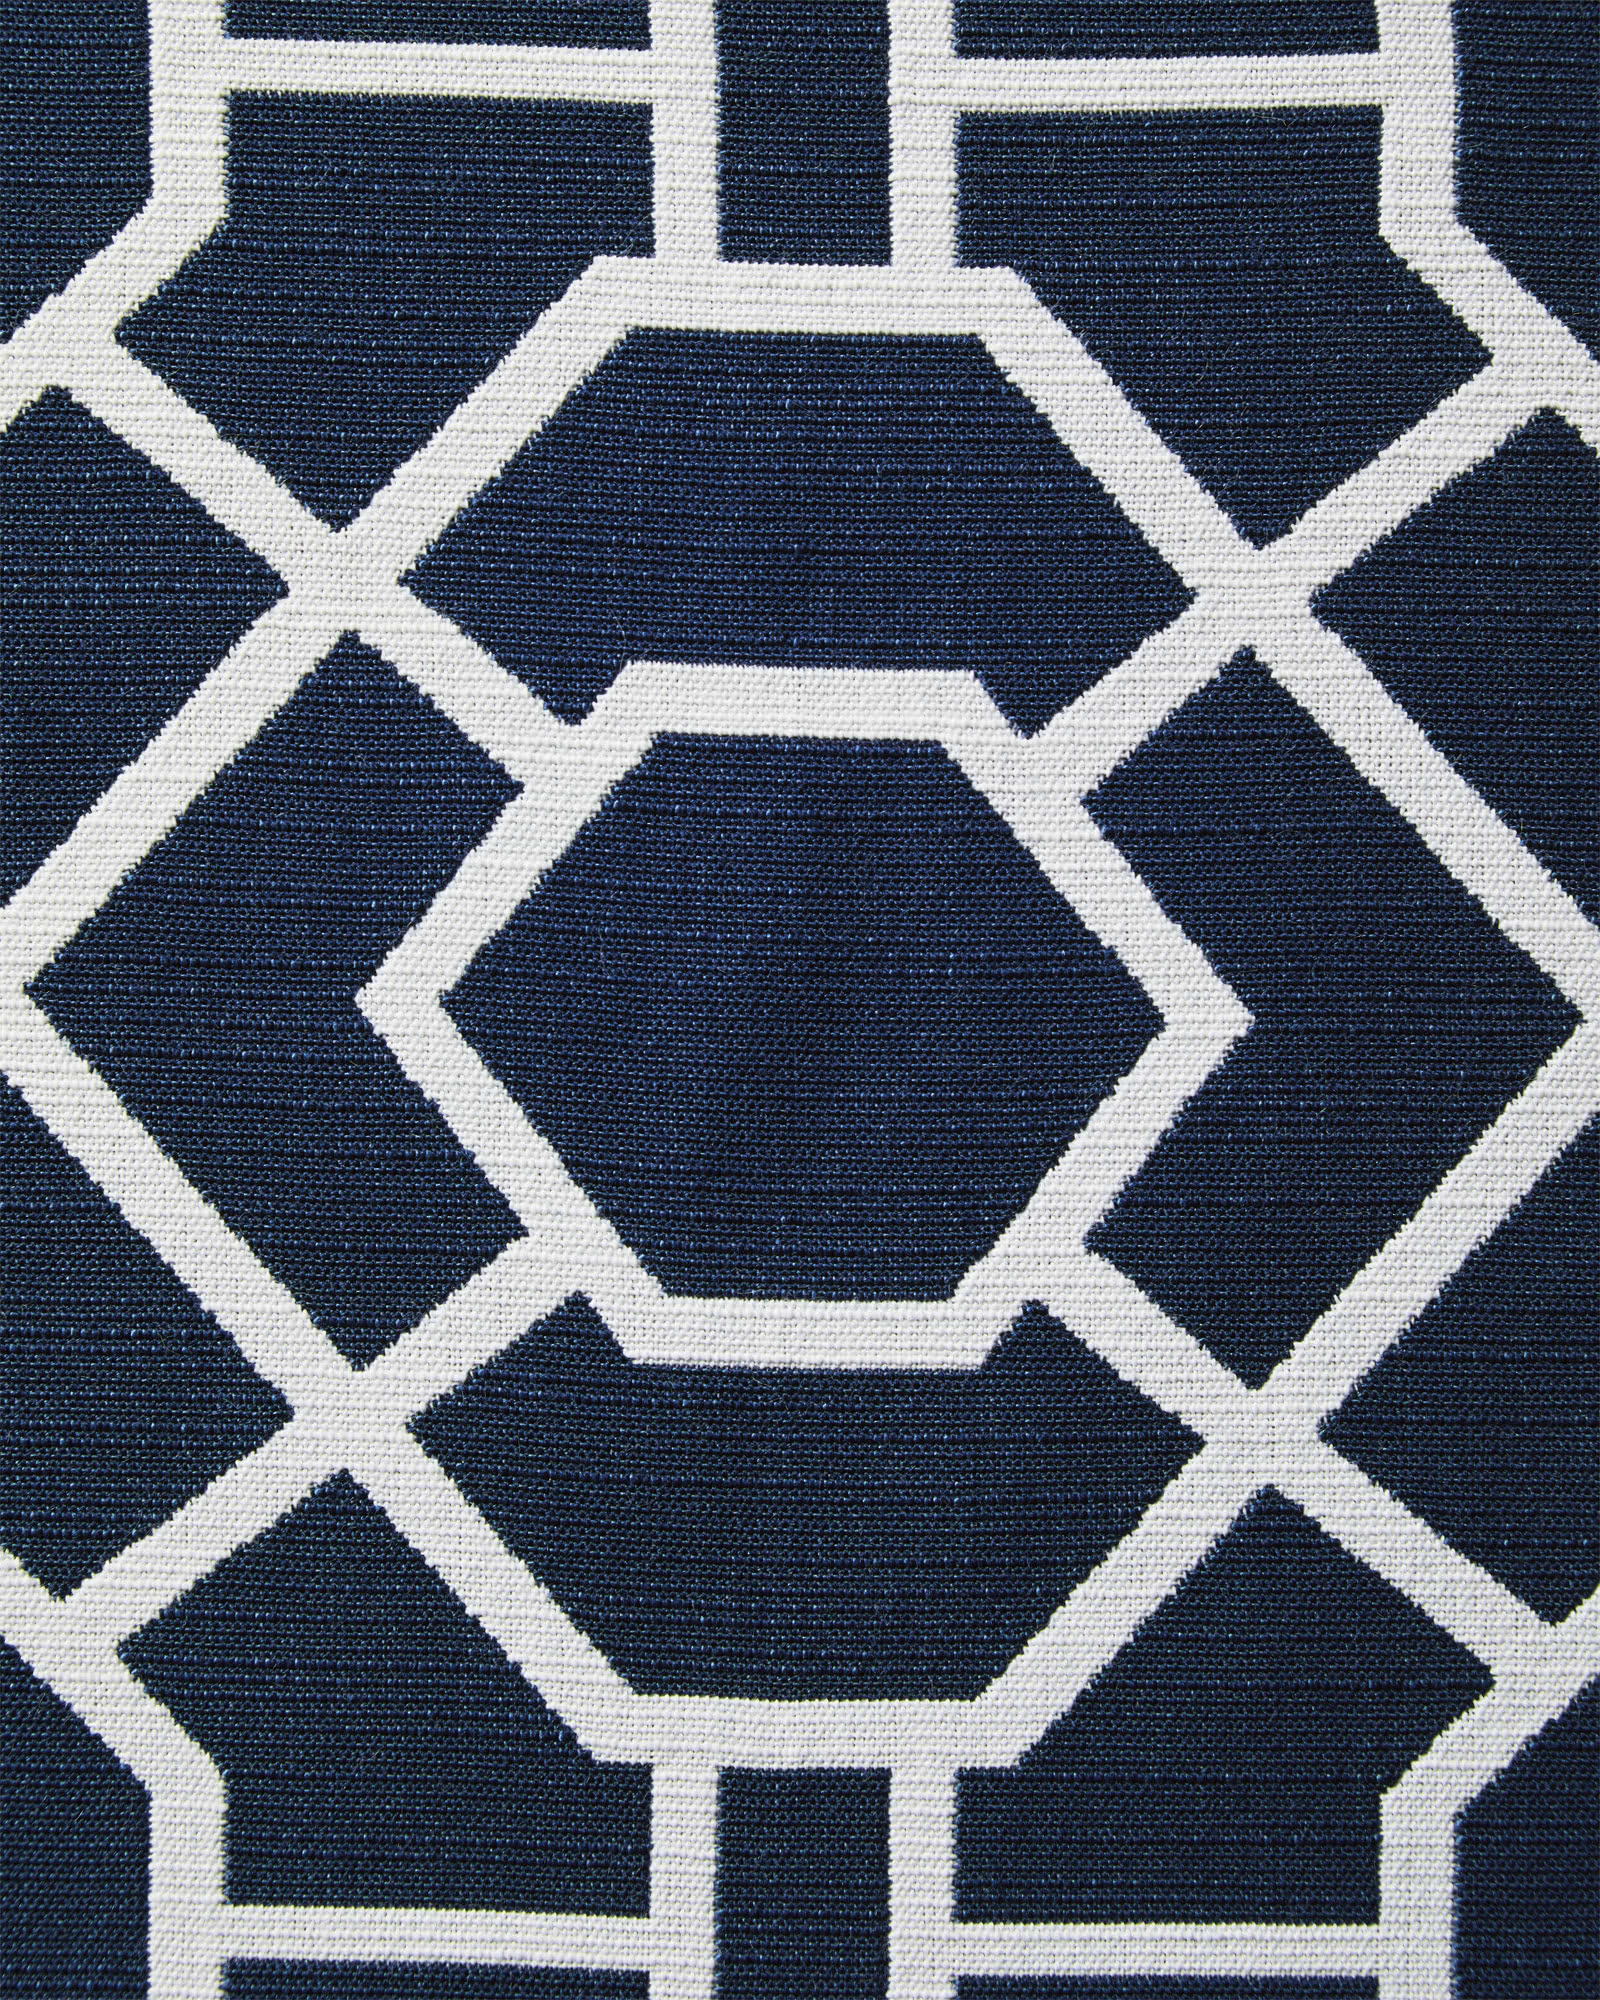 Perennials® Trellis - Navy/White,